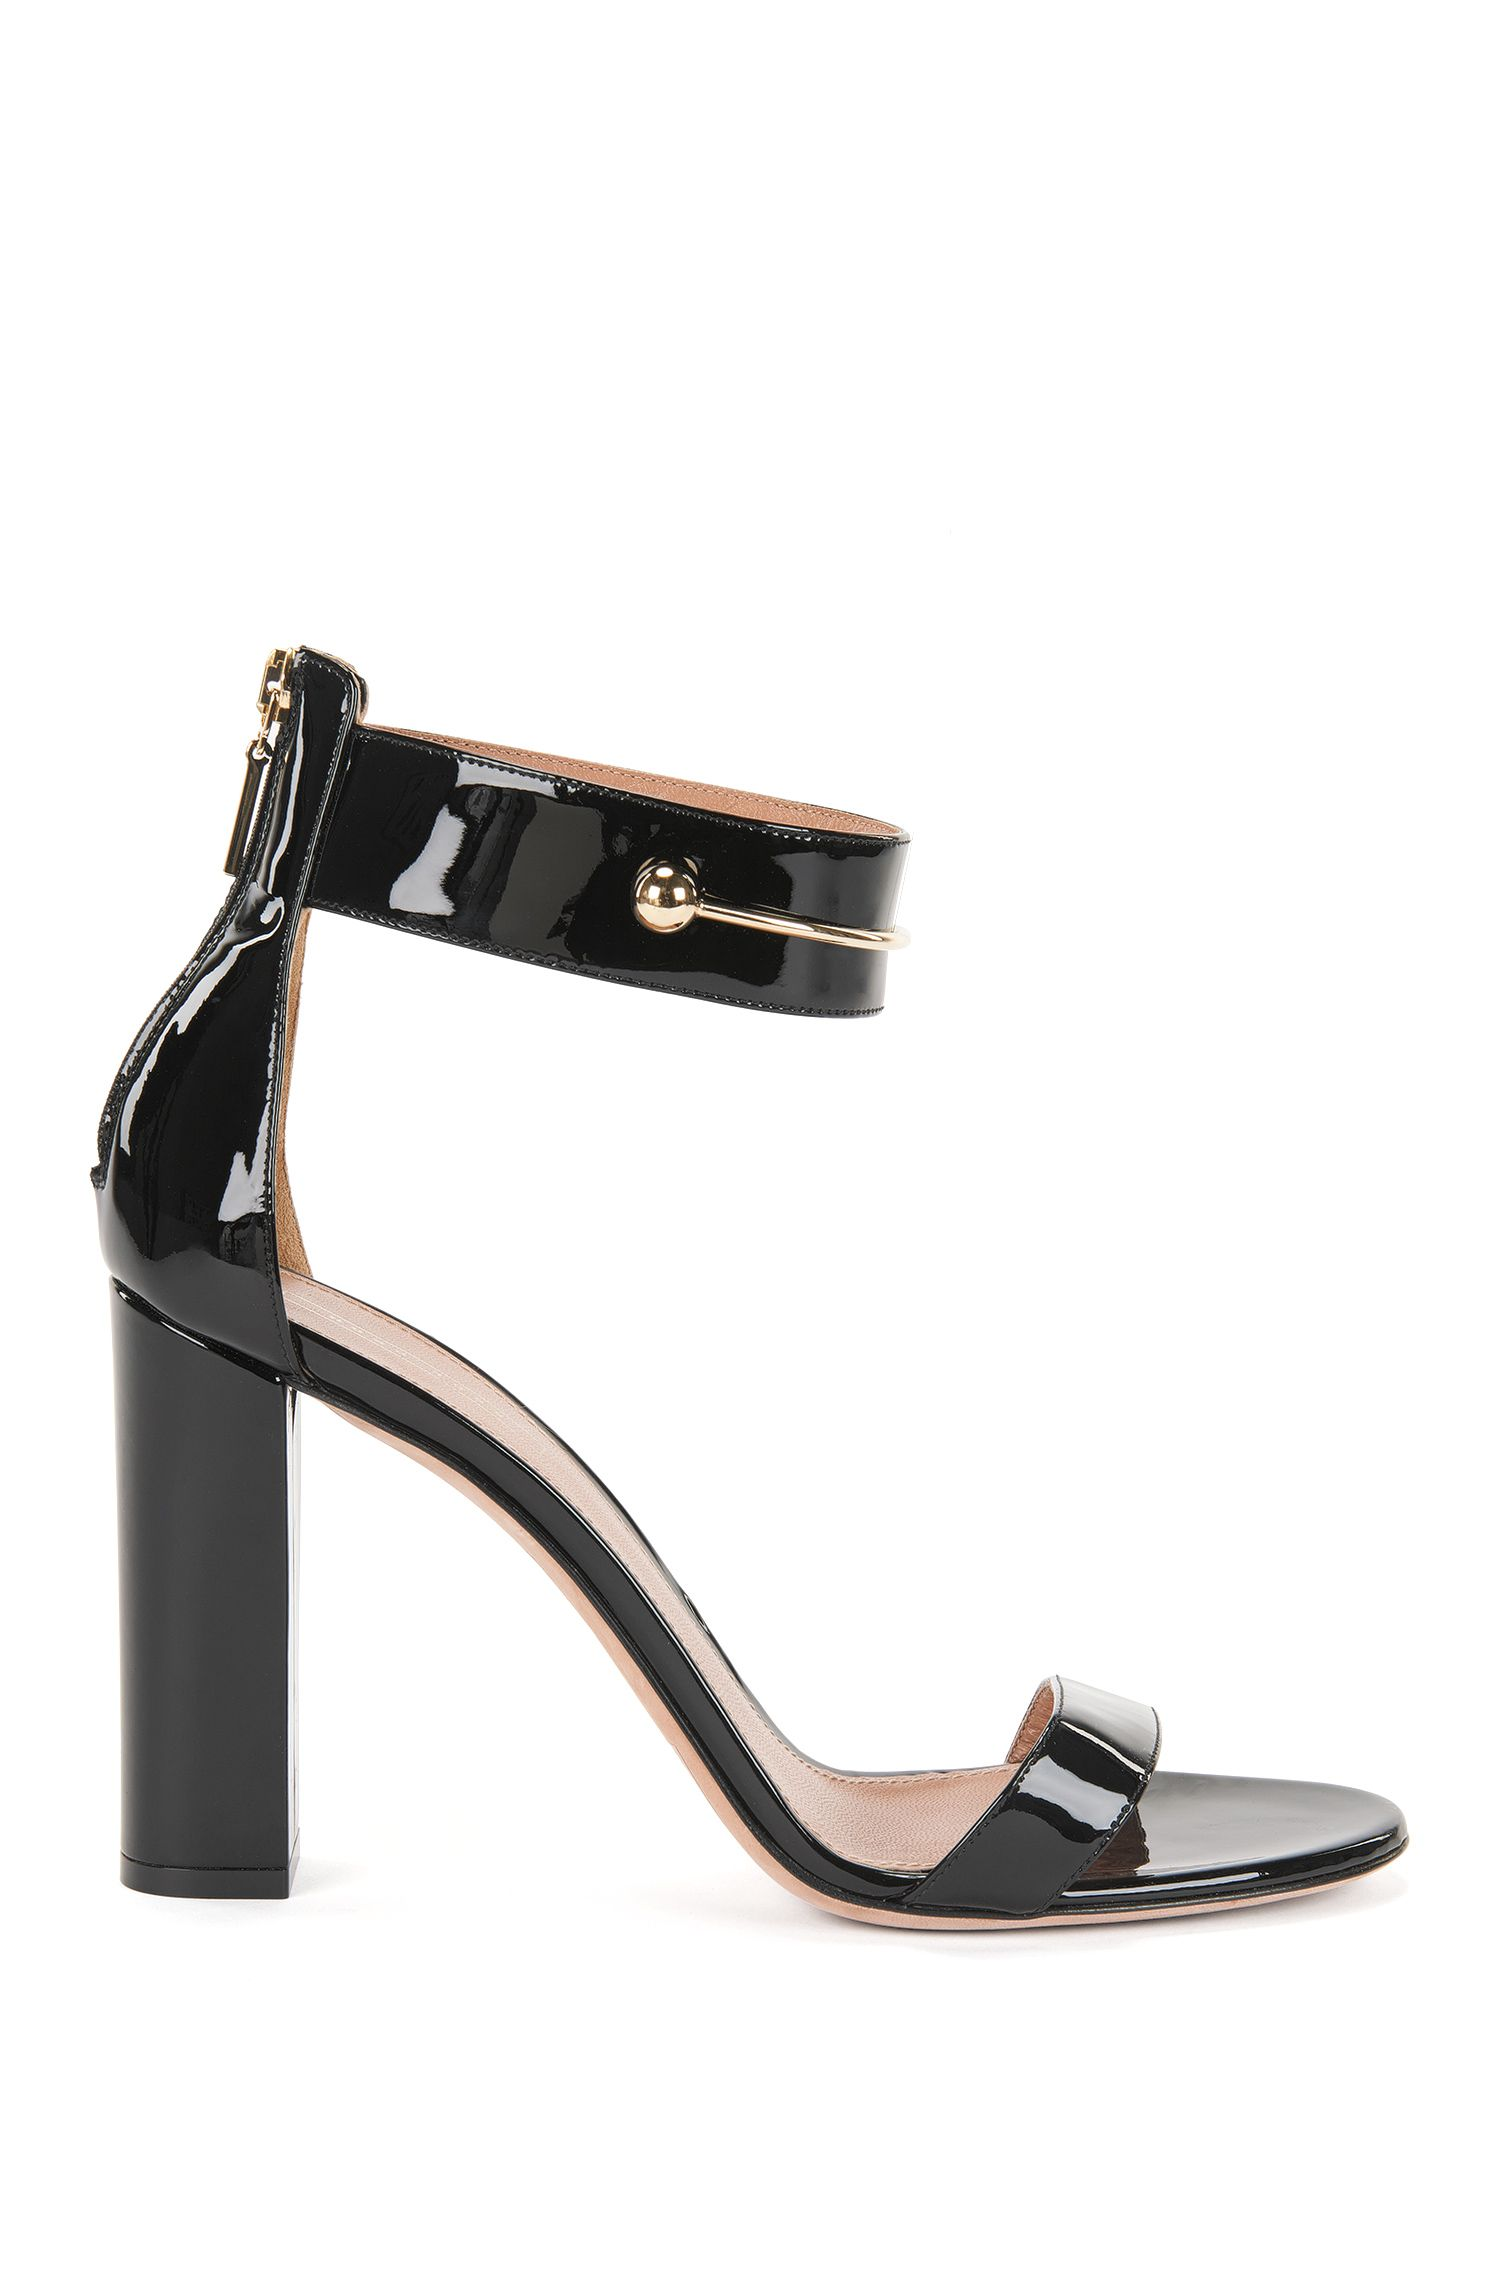 Patent Leather Sandal | Lily Sandal